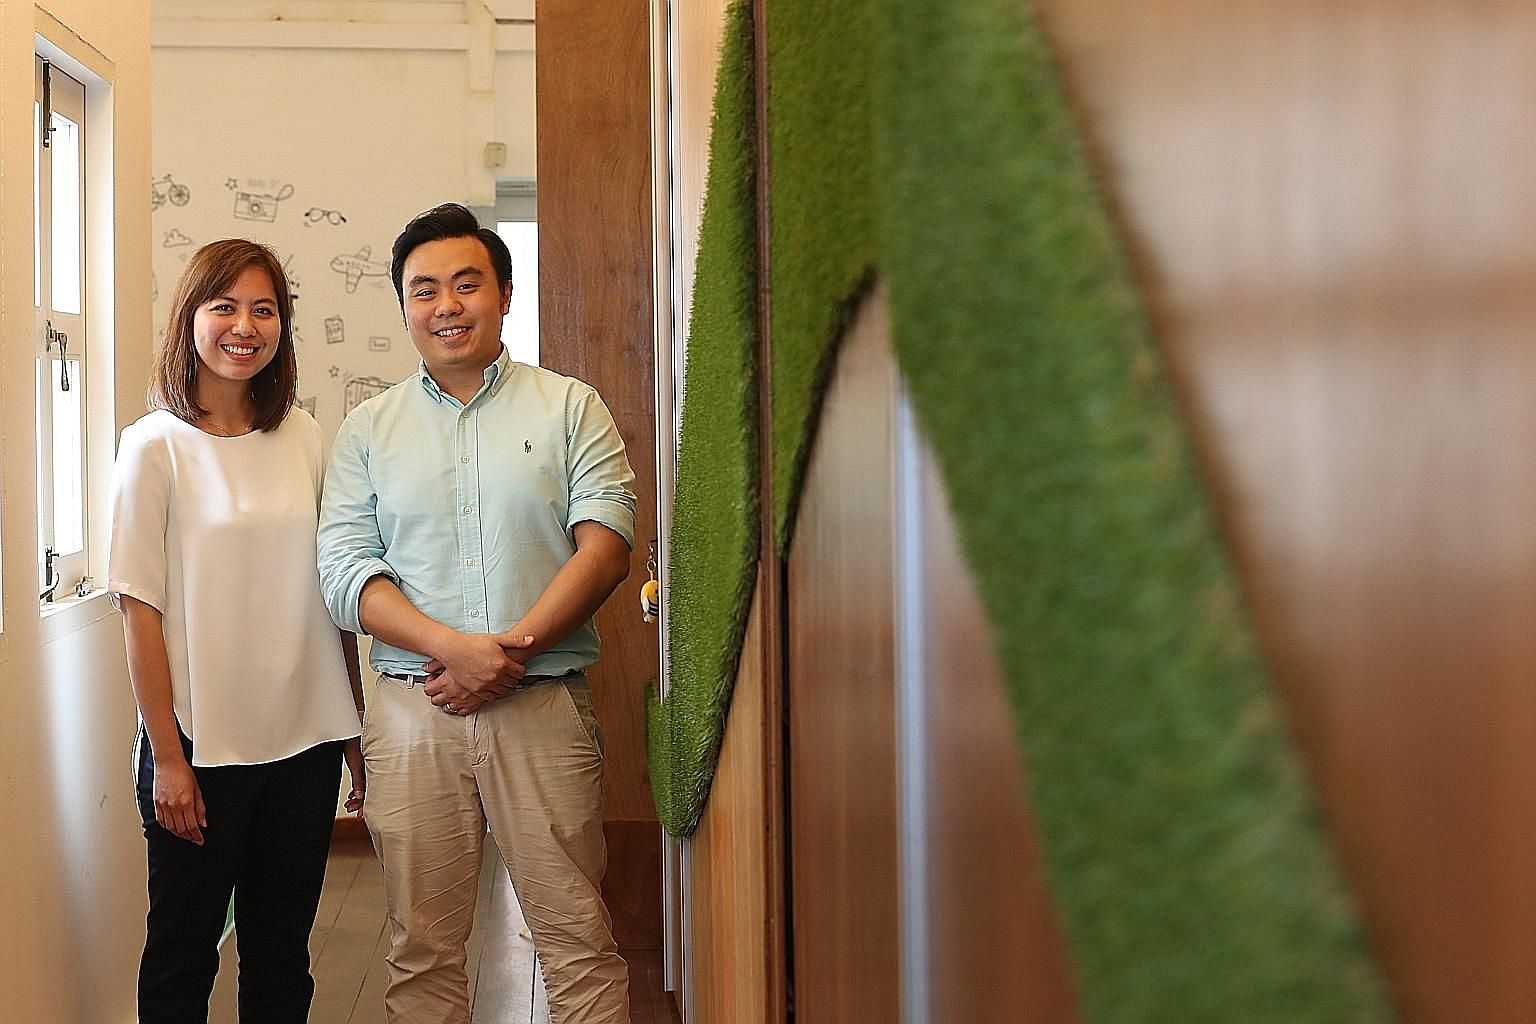 Have Halal, Will Travel co-founders Tengku Suzana Tengku Abdul Kadir, 28, and her husband, Mr Mikhail Goh, 29. They set up the platform in 2015 with a friend, with the aim of helping Muslims find halal food and prayer places in travel destinations ar